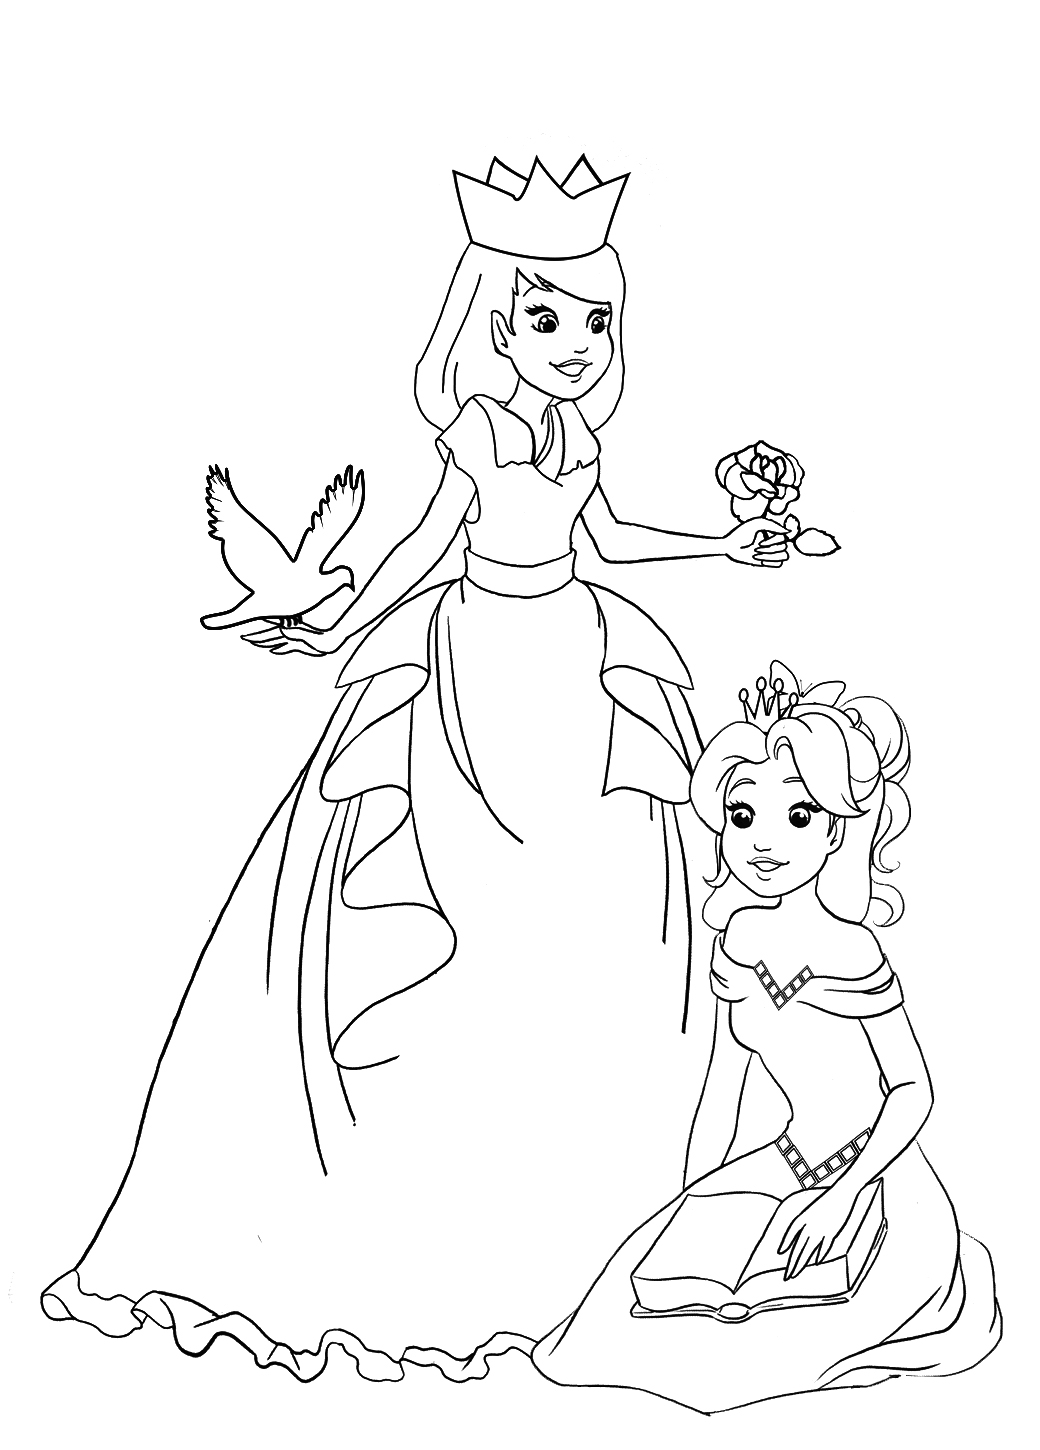 princesses coloring pages princess coloring pages free download on clipartmag princesses coloring pages